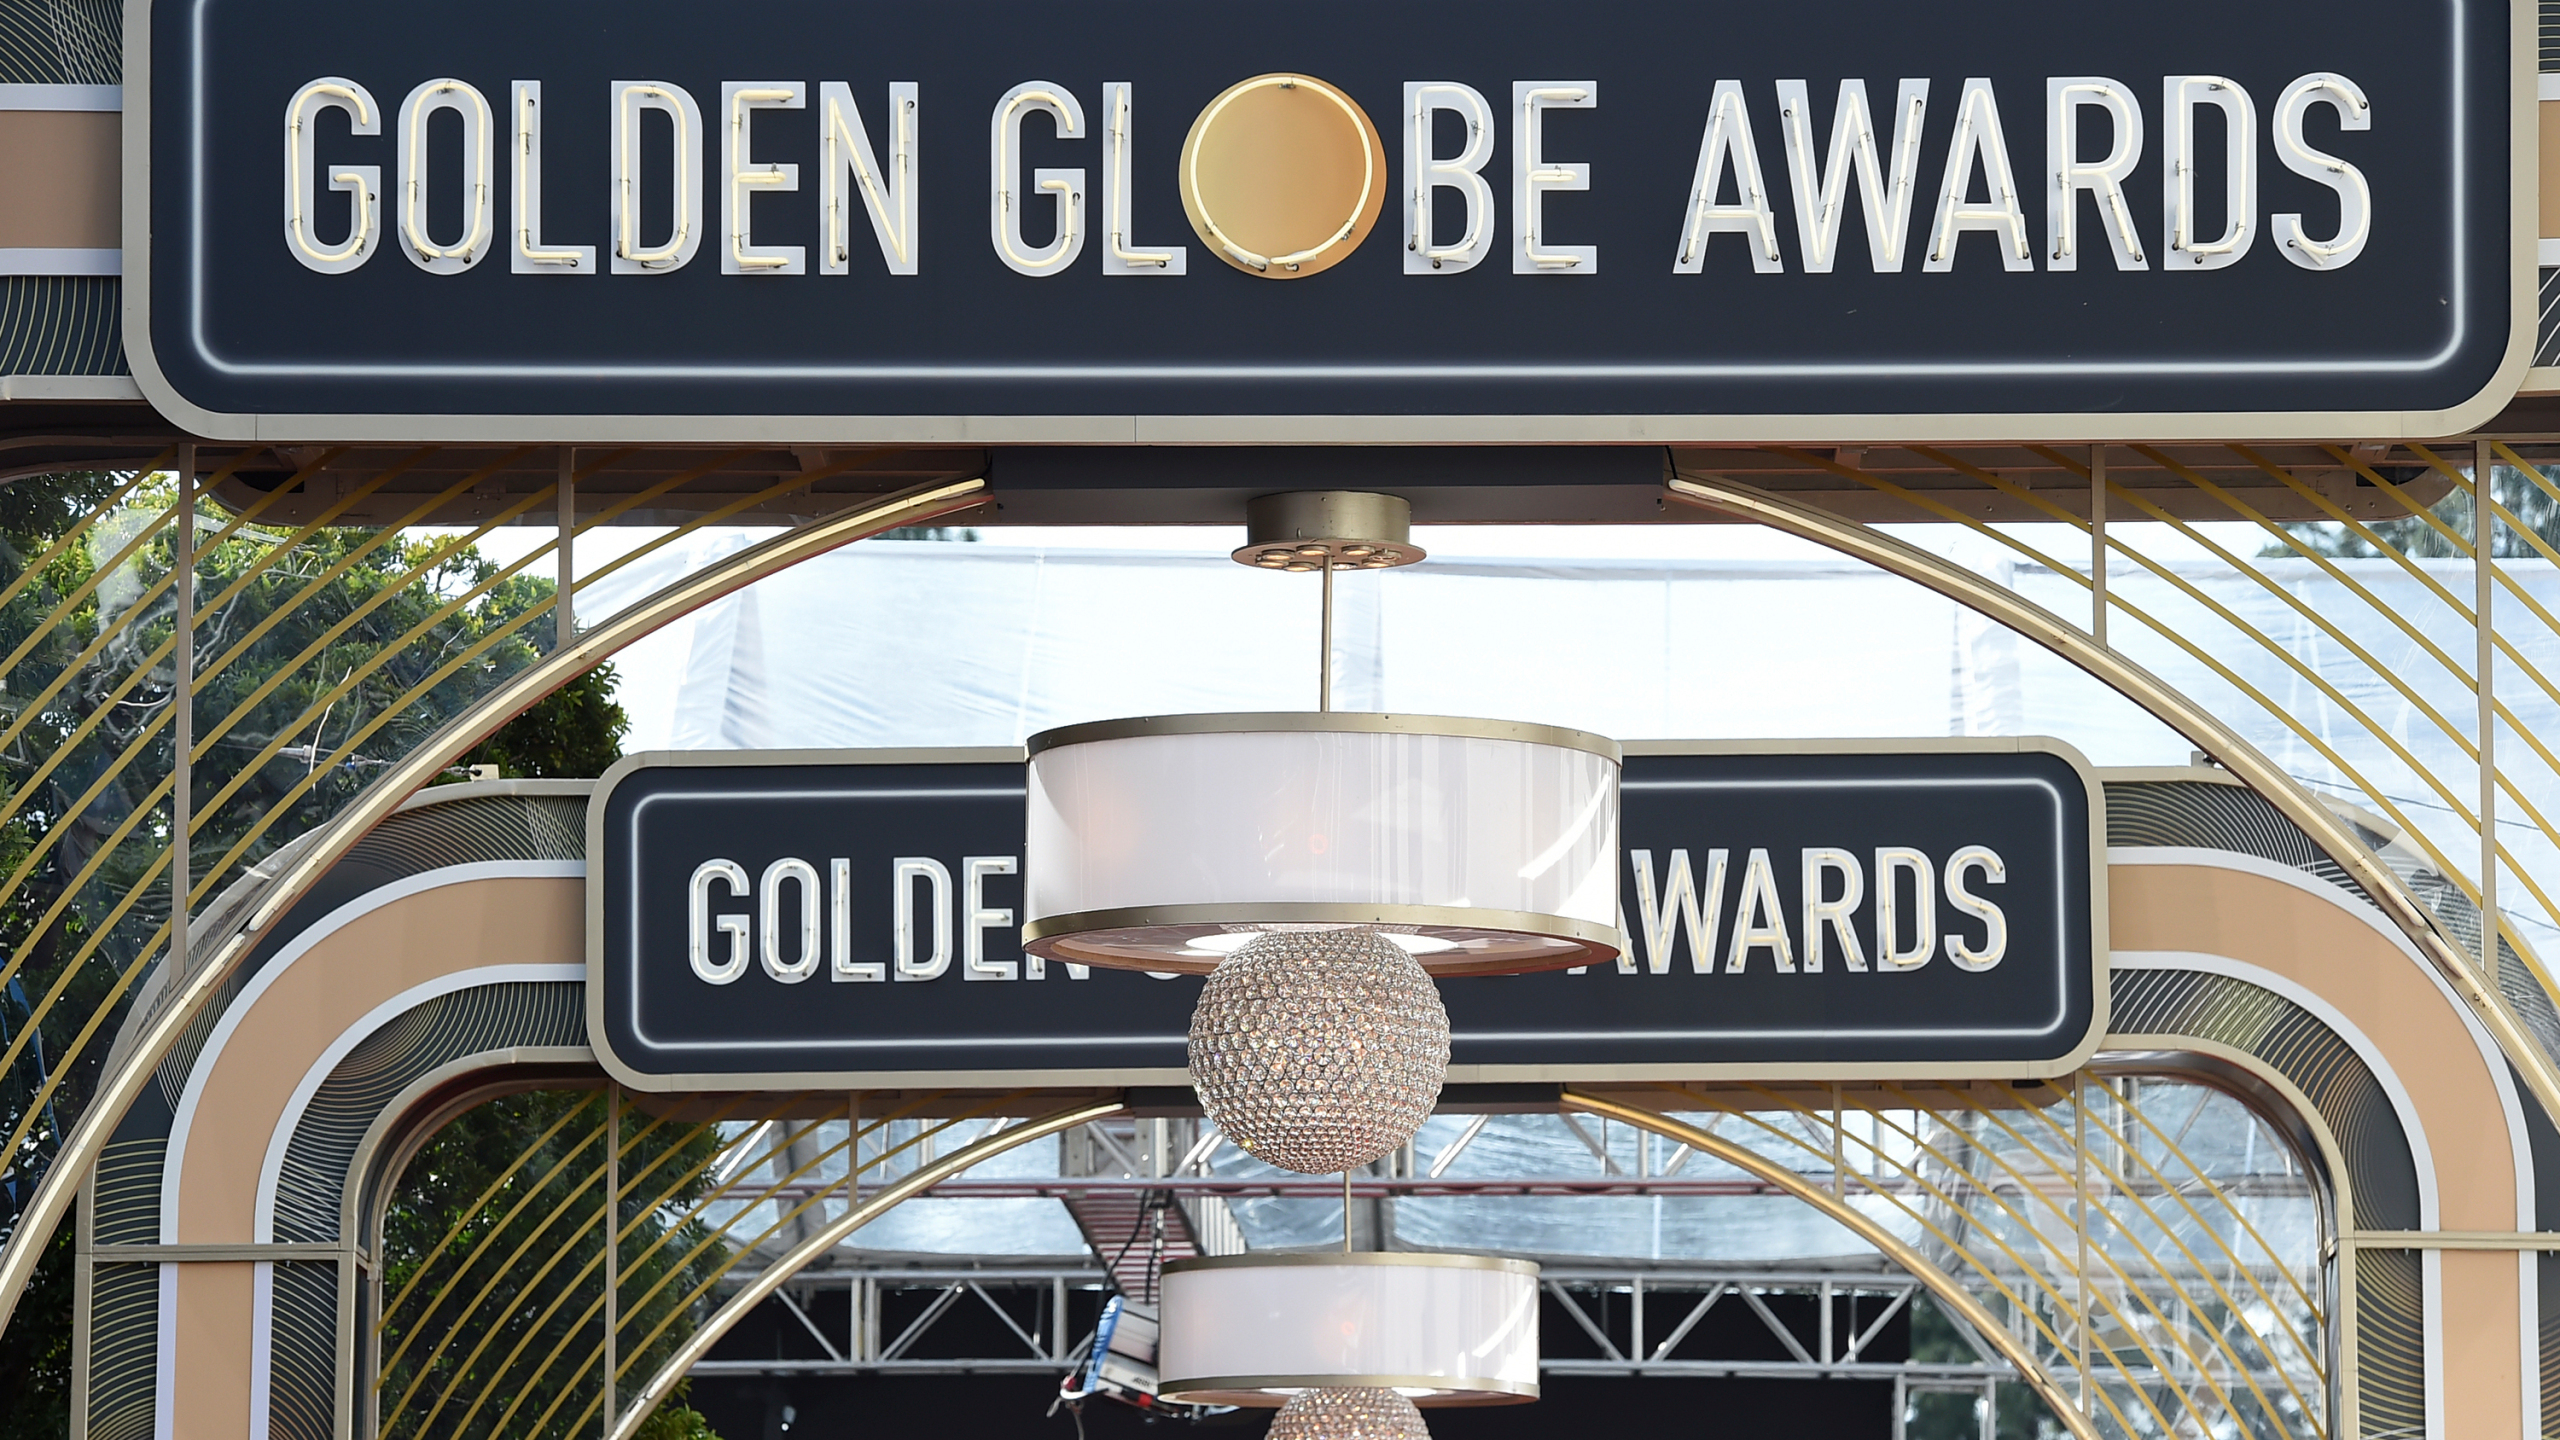 Golden Globes to be held bicoastally, with Fey in New York 1